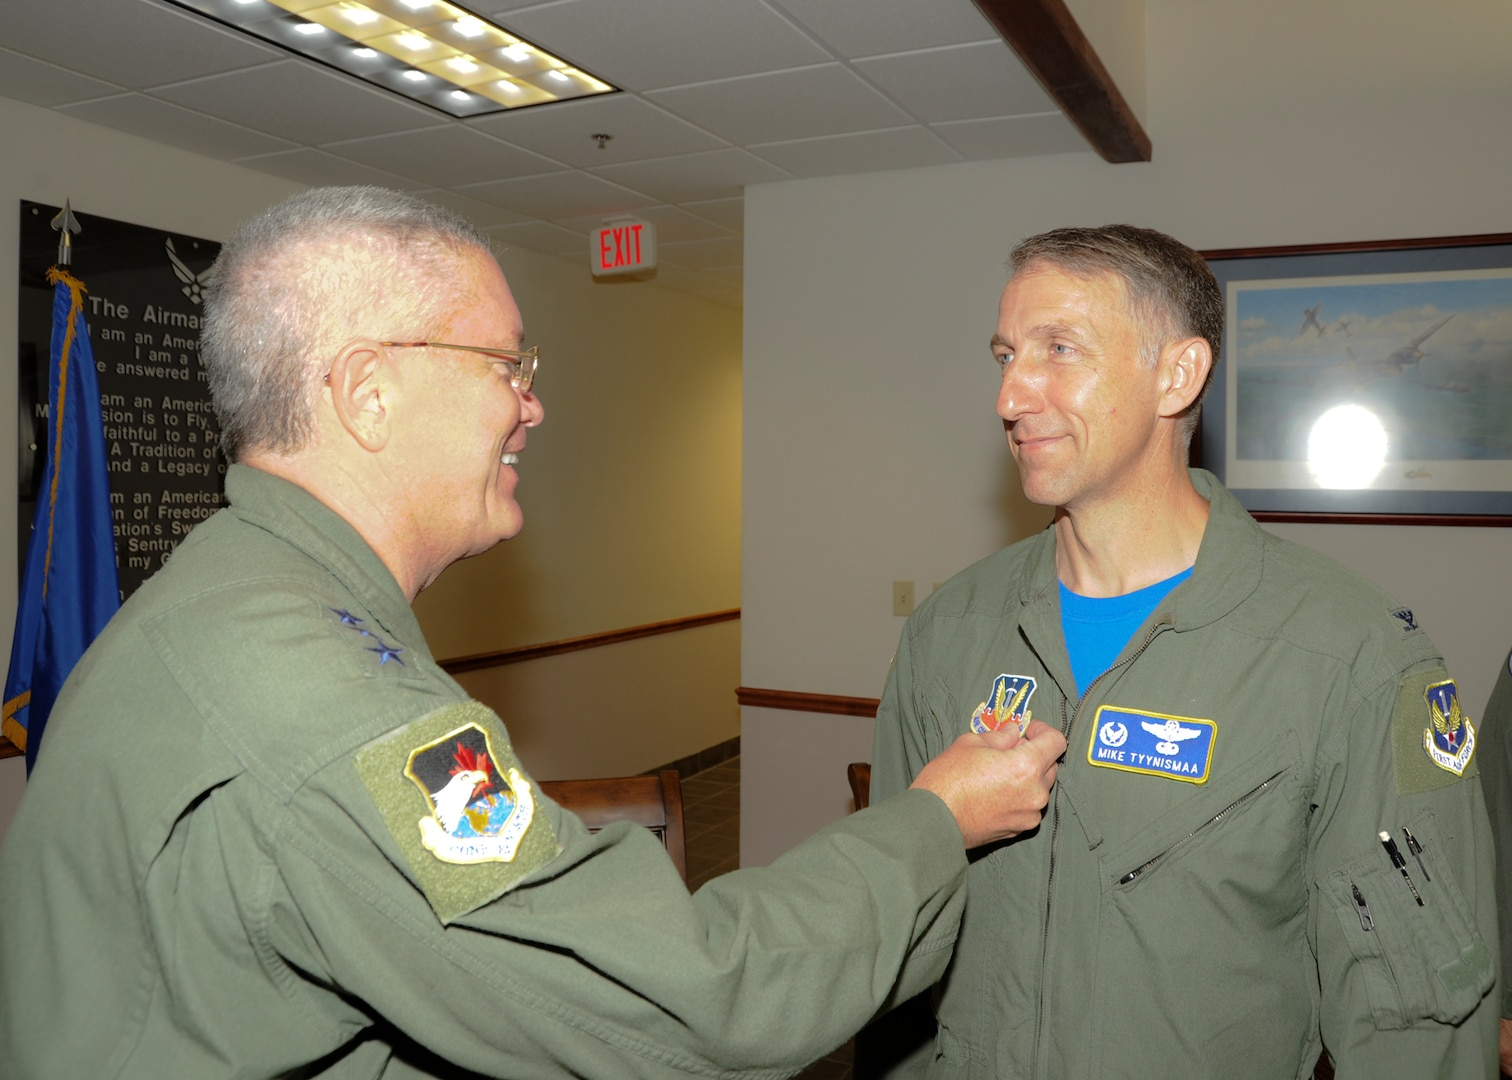 """As part of the Transfer of Authority ceremony held today to recognize the realignment of the Civil Air Patrol-U.S. Air Force – or CAP-USAF – from Air Education and Training Command to Air Combat Command, Lt. Gen. William Etter, commander of Continental U.S. NORAD Region-1st Air Force (Air Forces Northern) did a symbolic """"patch swap"""" replacing the Air Education and Training Command and Air University patches for the new ACC and 1 AF patches on the uniform of  CAP-USAF commander, Col. Mike Tynismaa."""